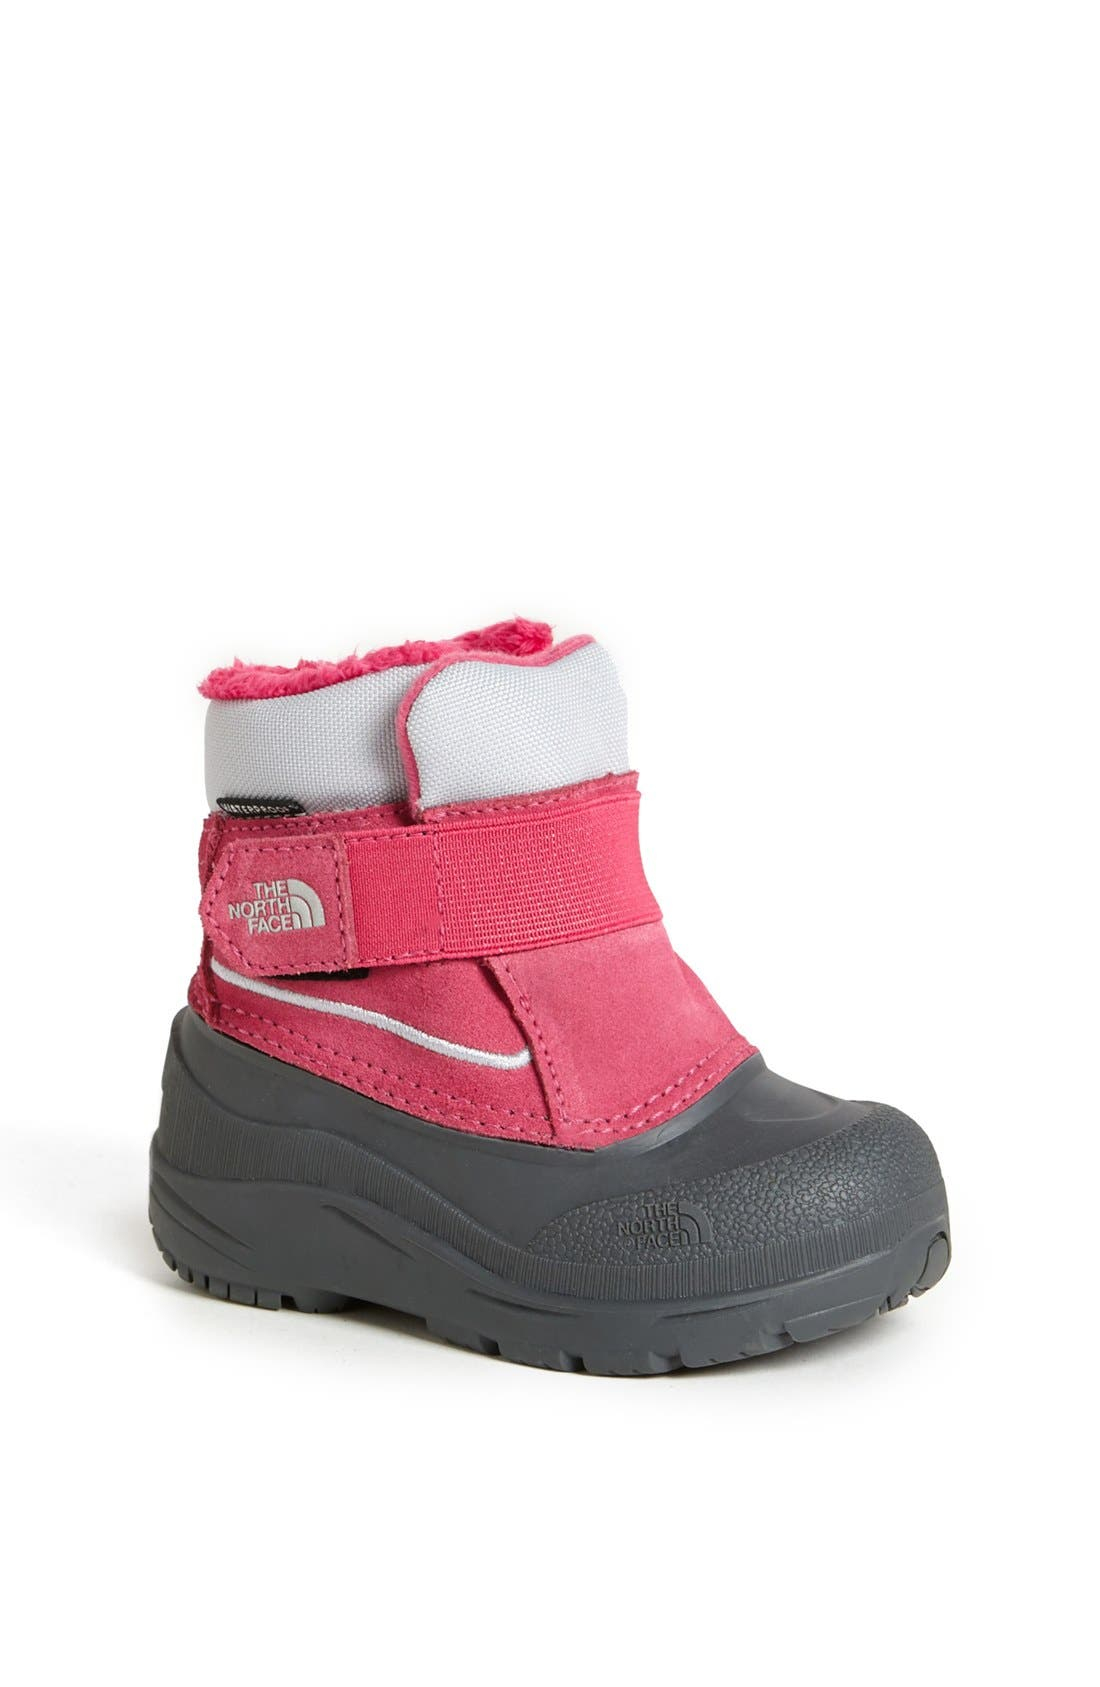 Alternate Image 1 Selected - The North Face 'Powder Hound' Waterproof Snow Boot (Walker & Toddler)